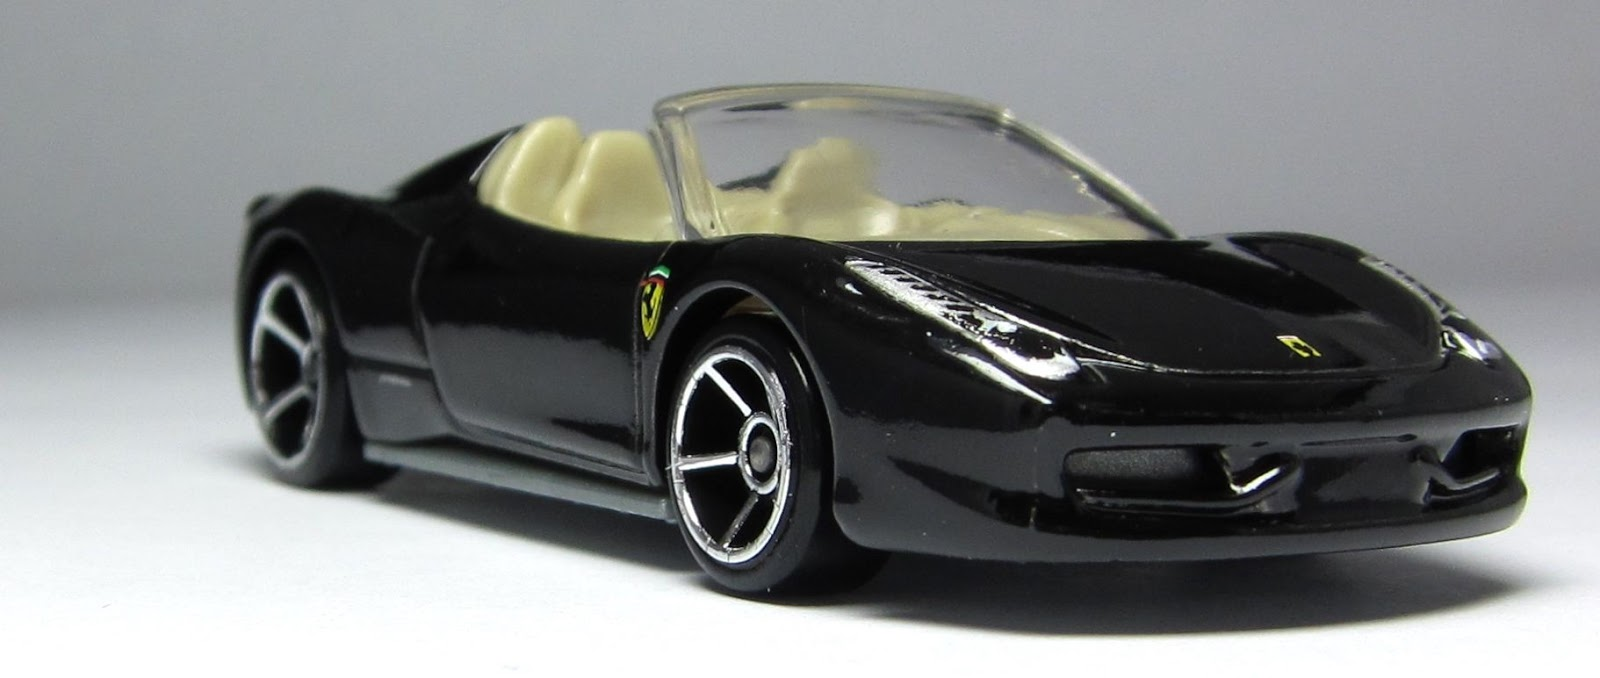 Making sense of the 2013 ferrari 458 spider variations the but it comes right on the heels of the 2012 yellow version so it was not a surprise to see a handful of black versions sporting the yellows black interior vanachro Choice Image